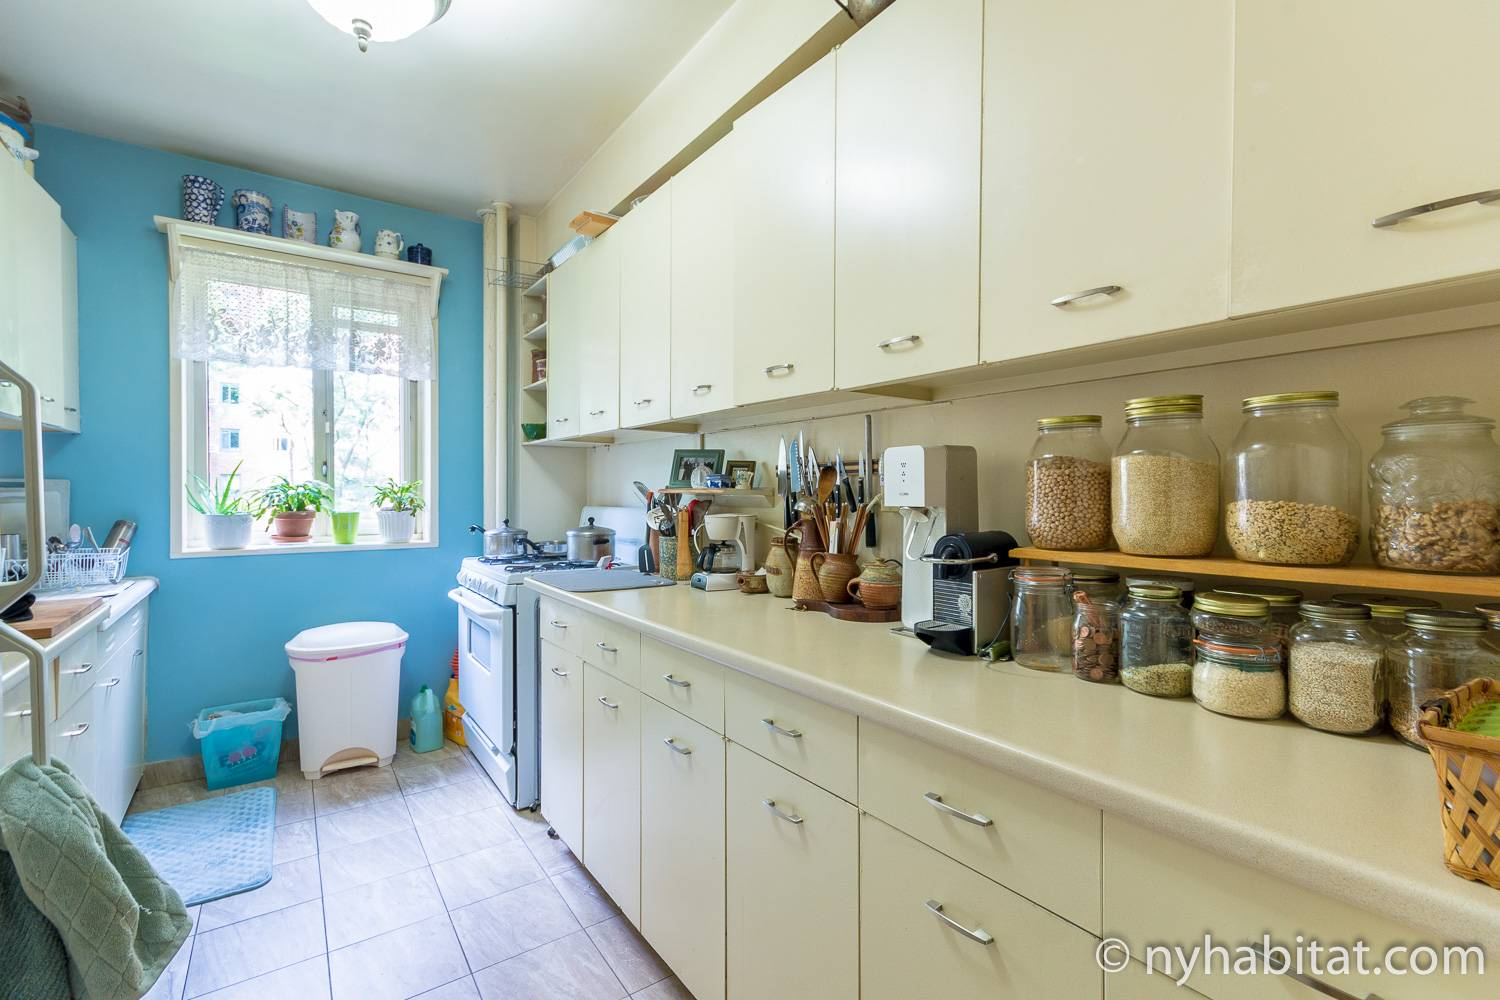 Image of kitchen in NY-17206.